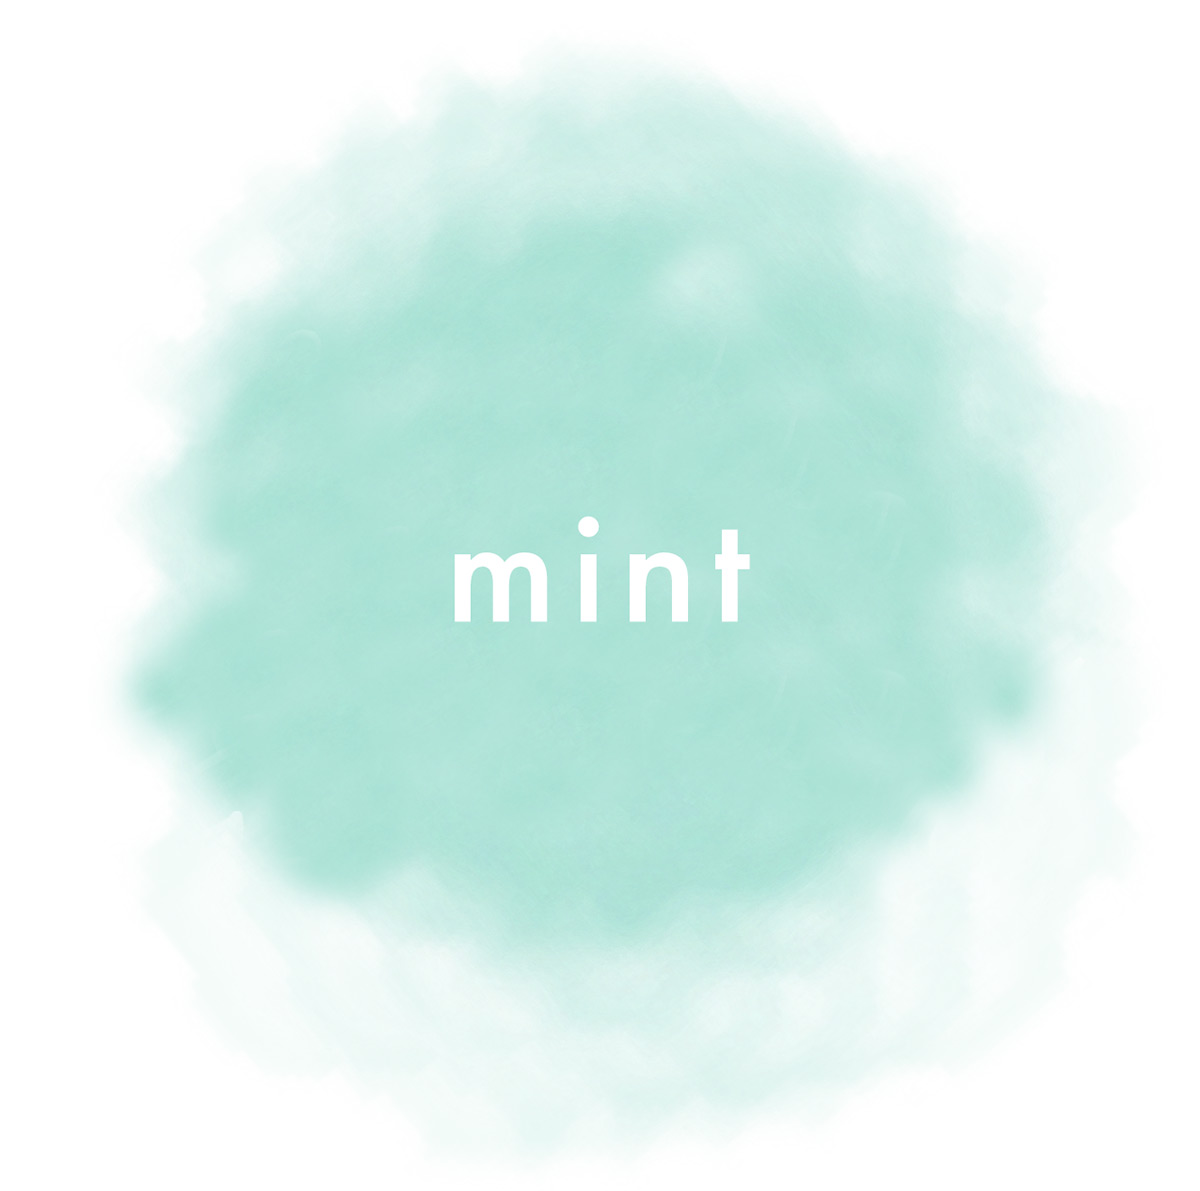 What inspired you? The color mint - new blog series - kraft&mint